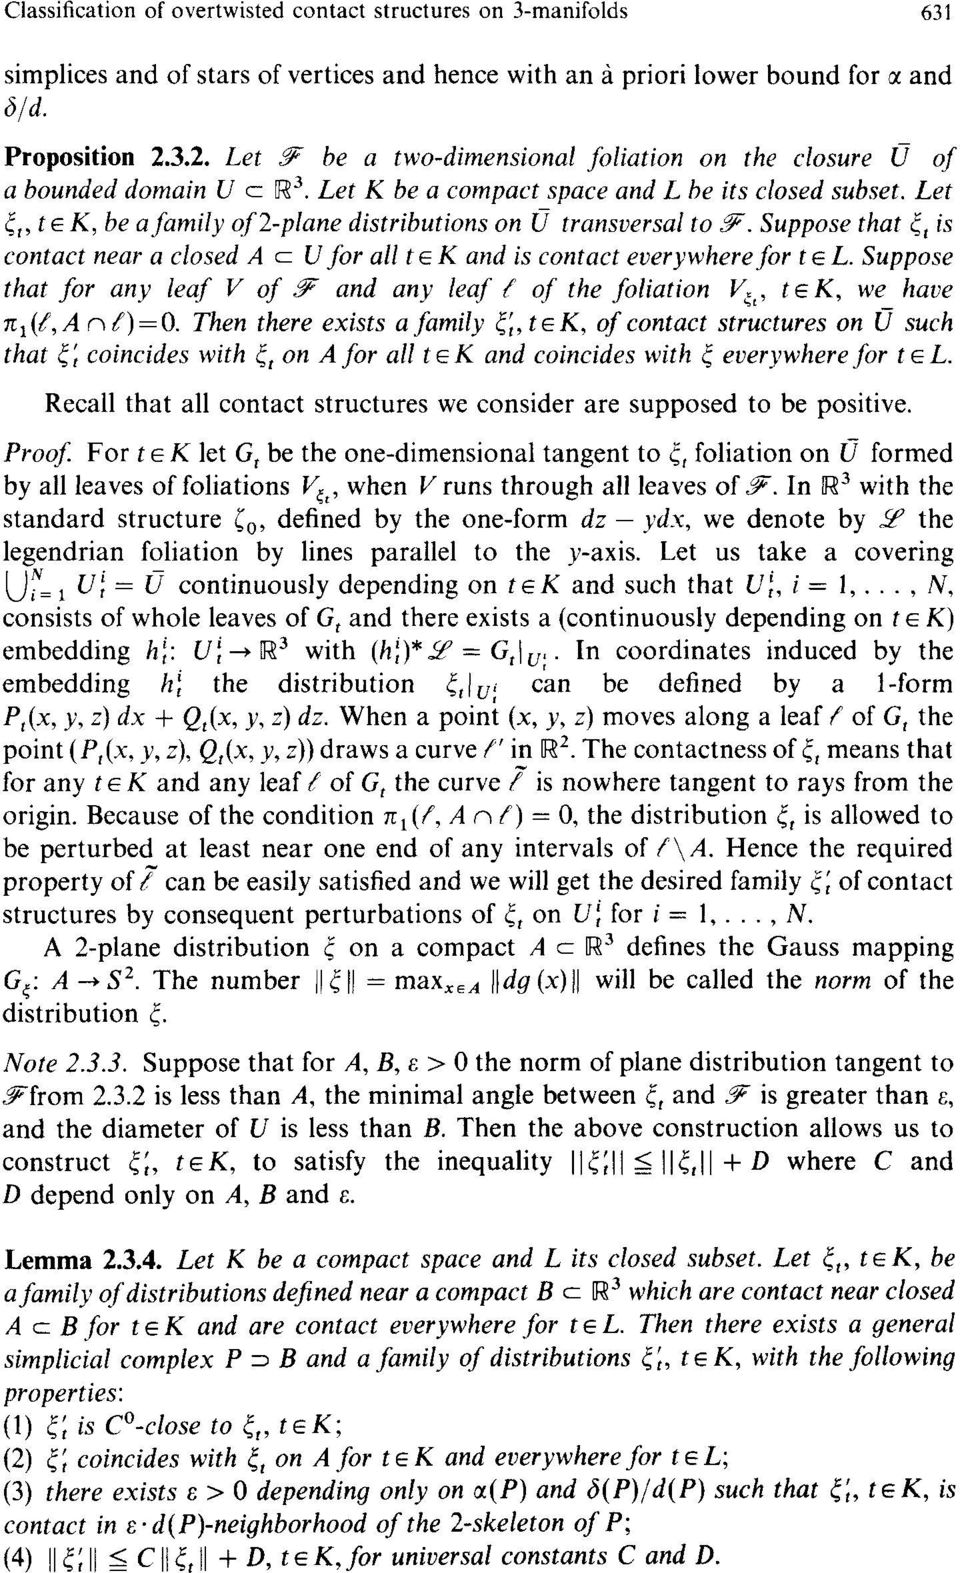 Let (t, t ~ K, be a family of 2-plane distributions on tj transversal to Y. Suppose that ~t is contact near a closed A c U for all t ~ K and is contact everywhere for t ~ L.